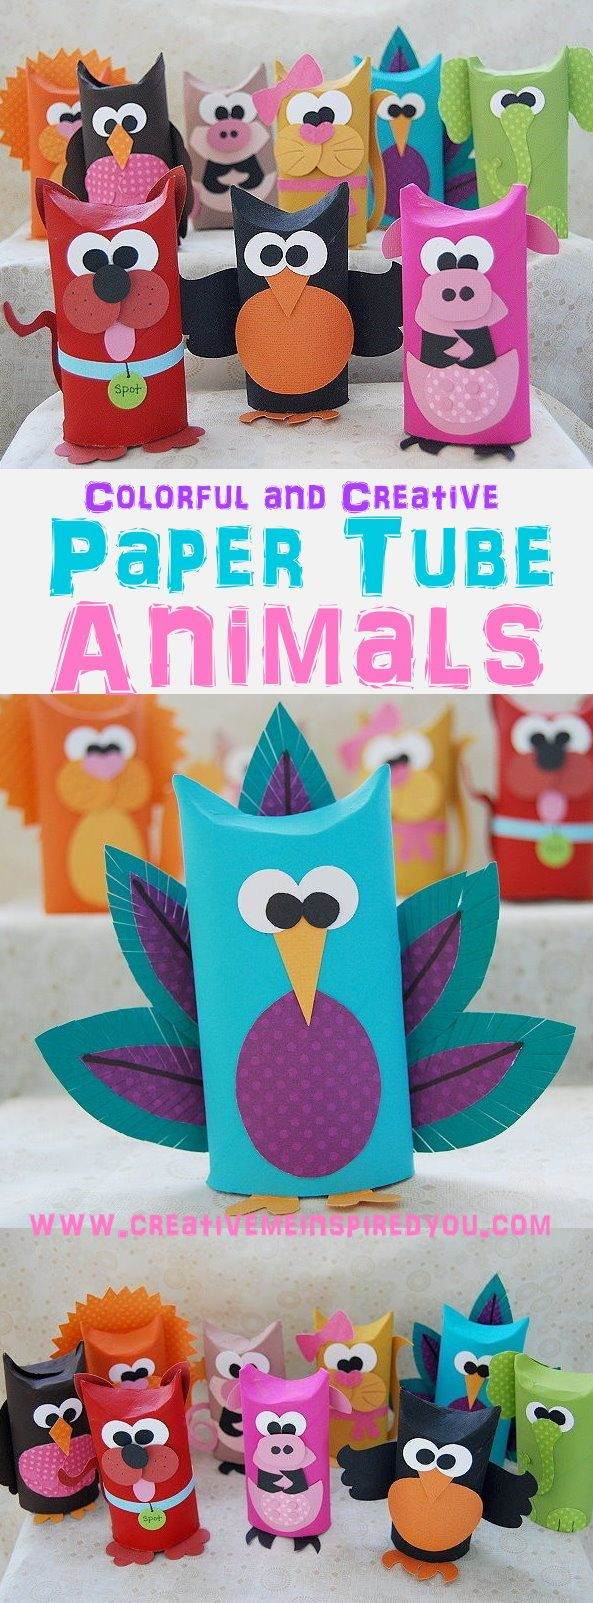 Toilet paper tube animials